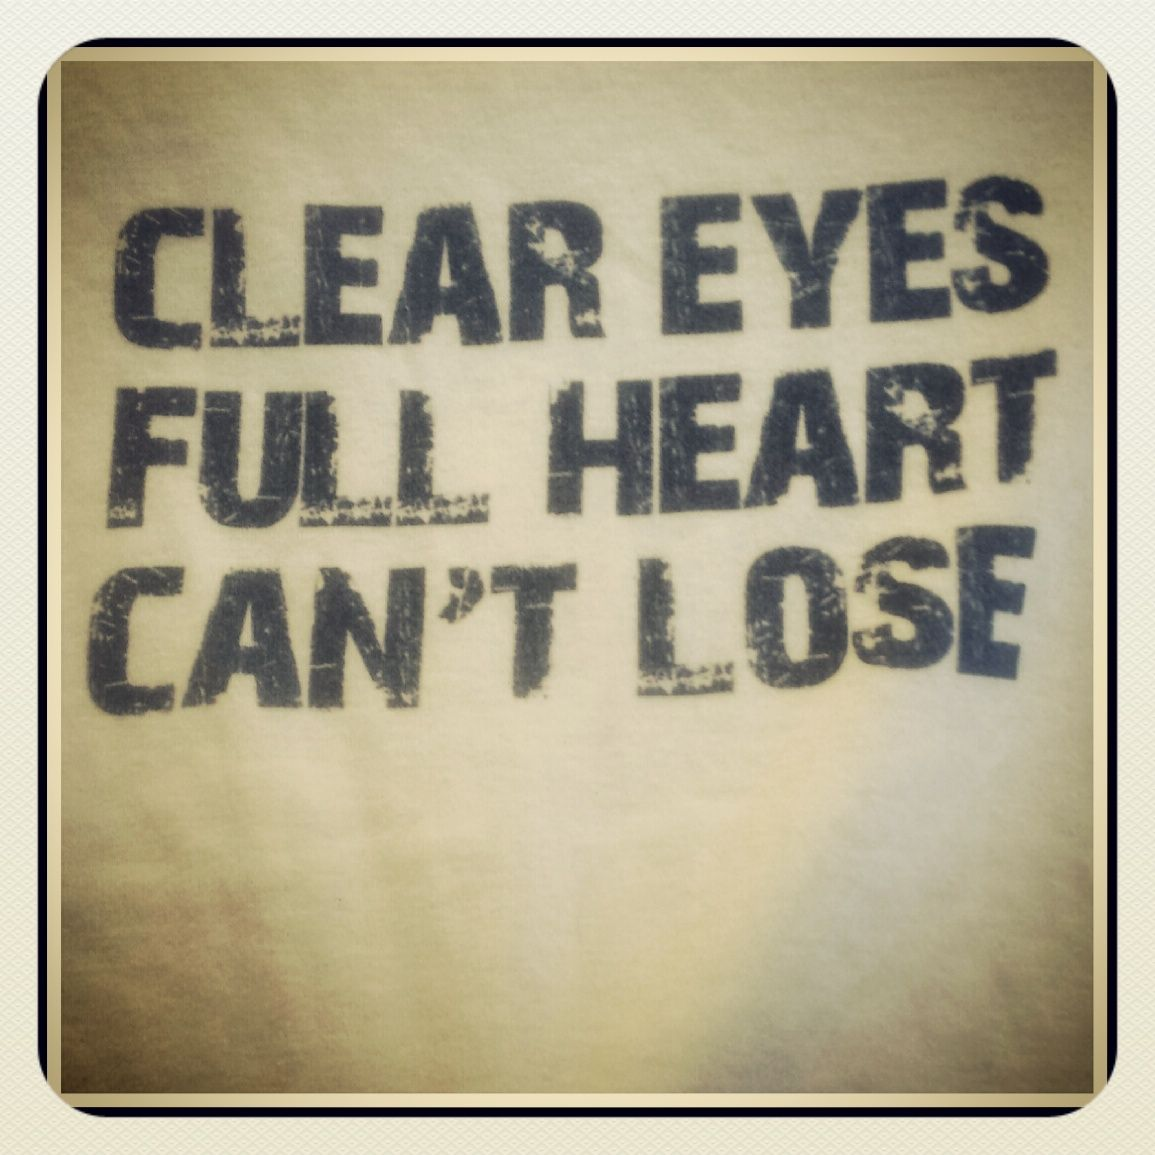 """Clear eyes, full heart, can't lose."" #TShirt"